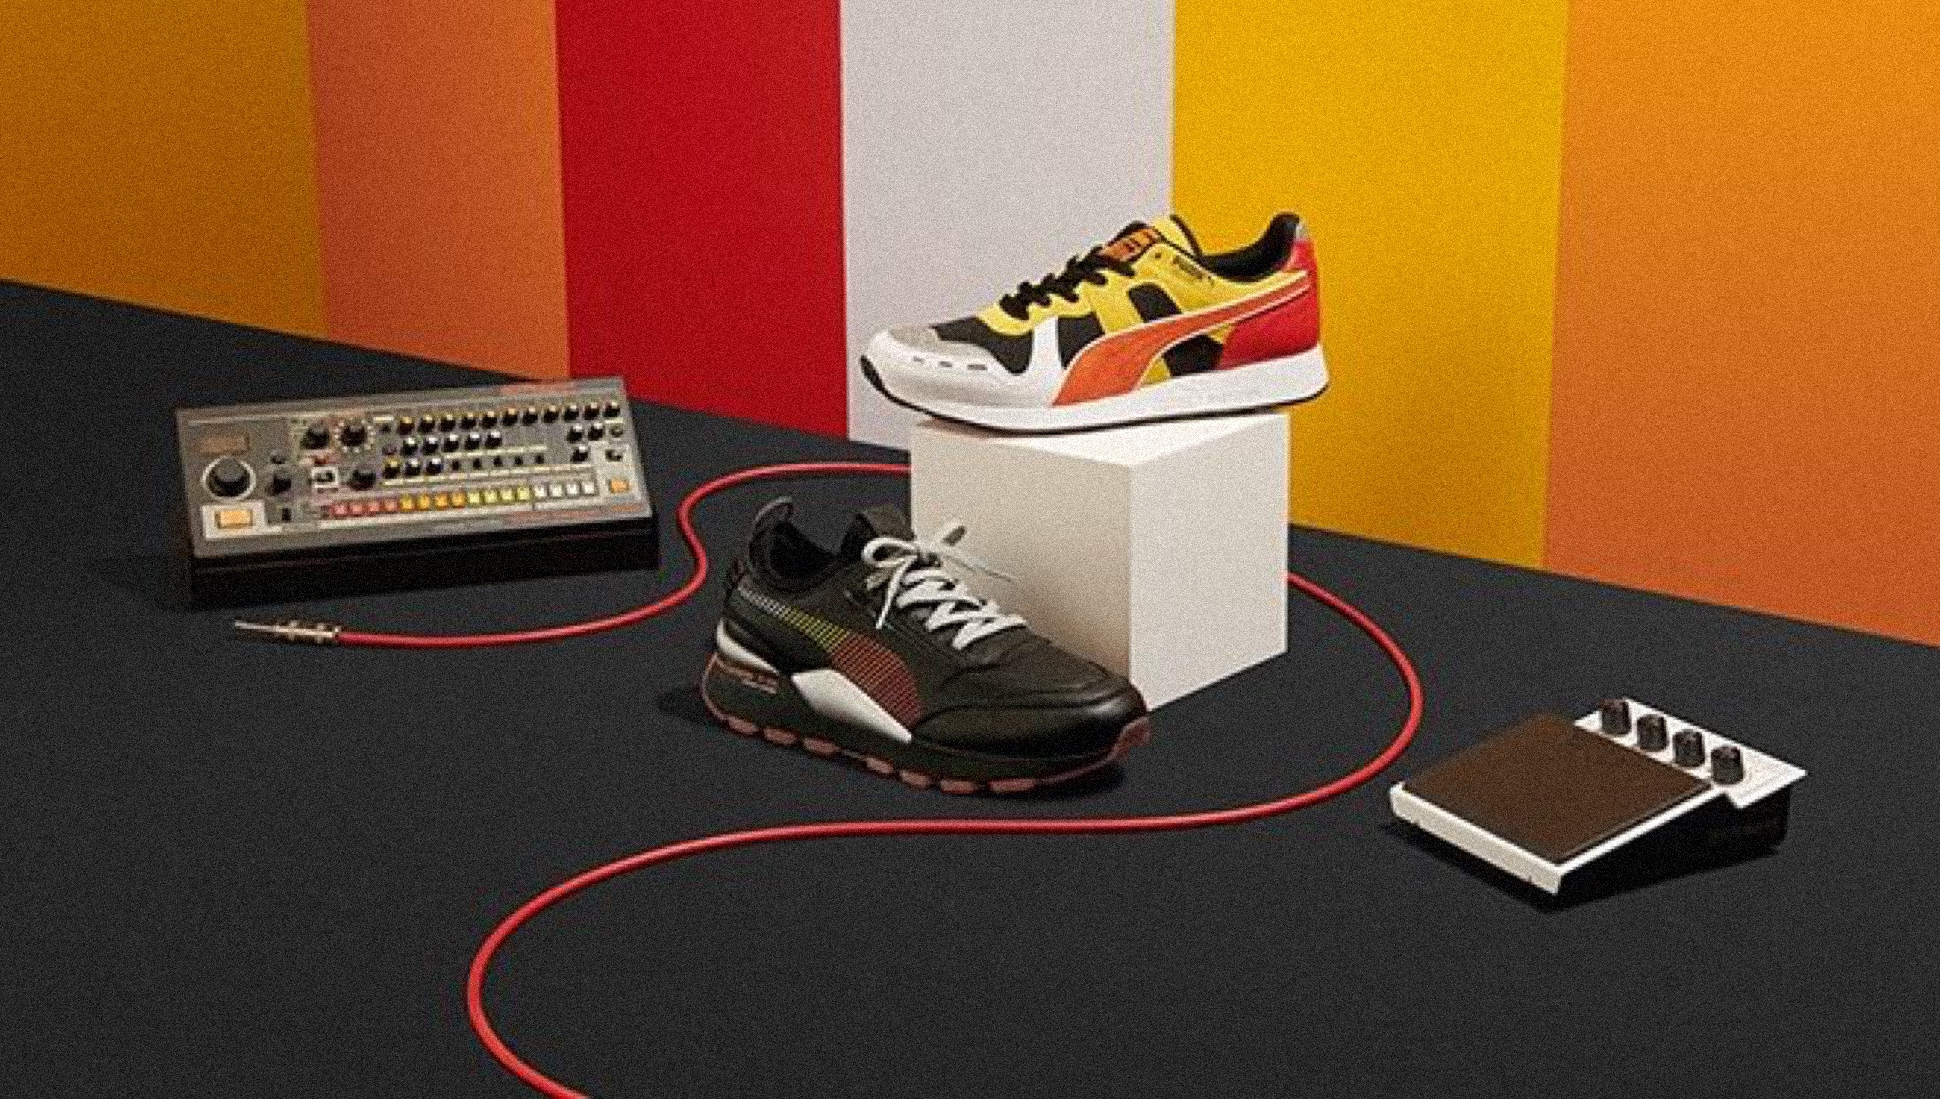 35b78ef8cac2 Roland and Puma reveal a new TR-808 inspired sneaker collaboration